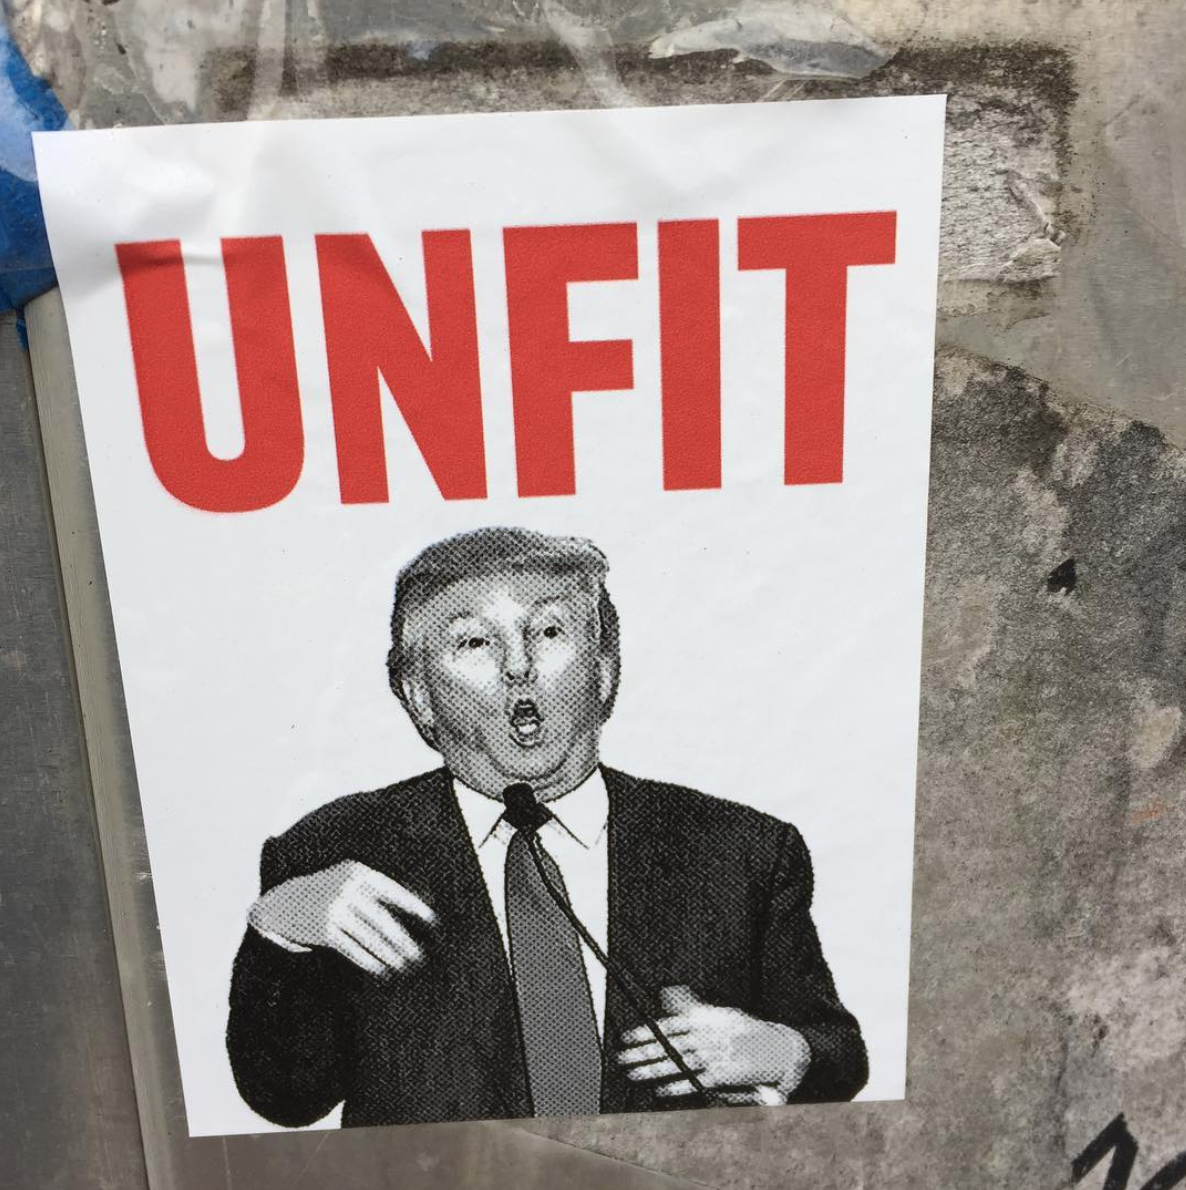 """Copy of Picture of Trump saying """"Unfit"""""""